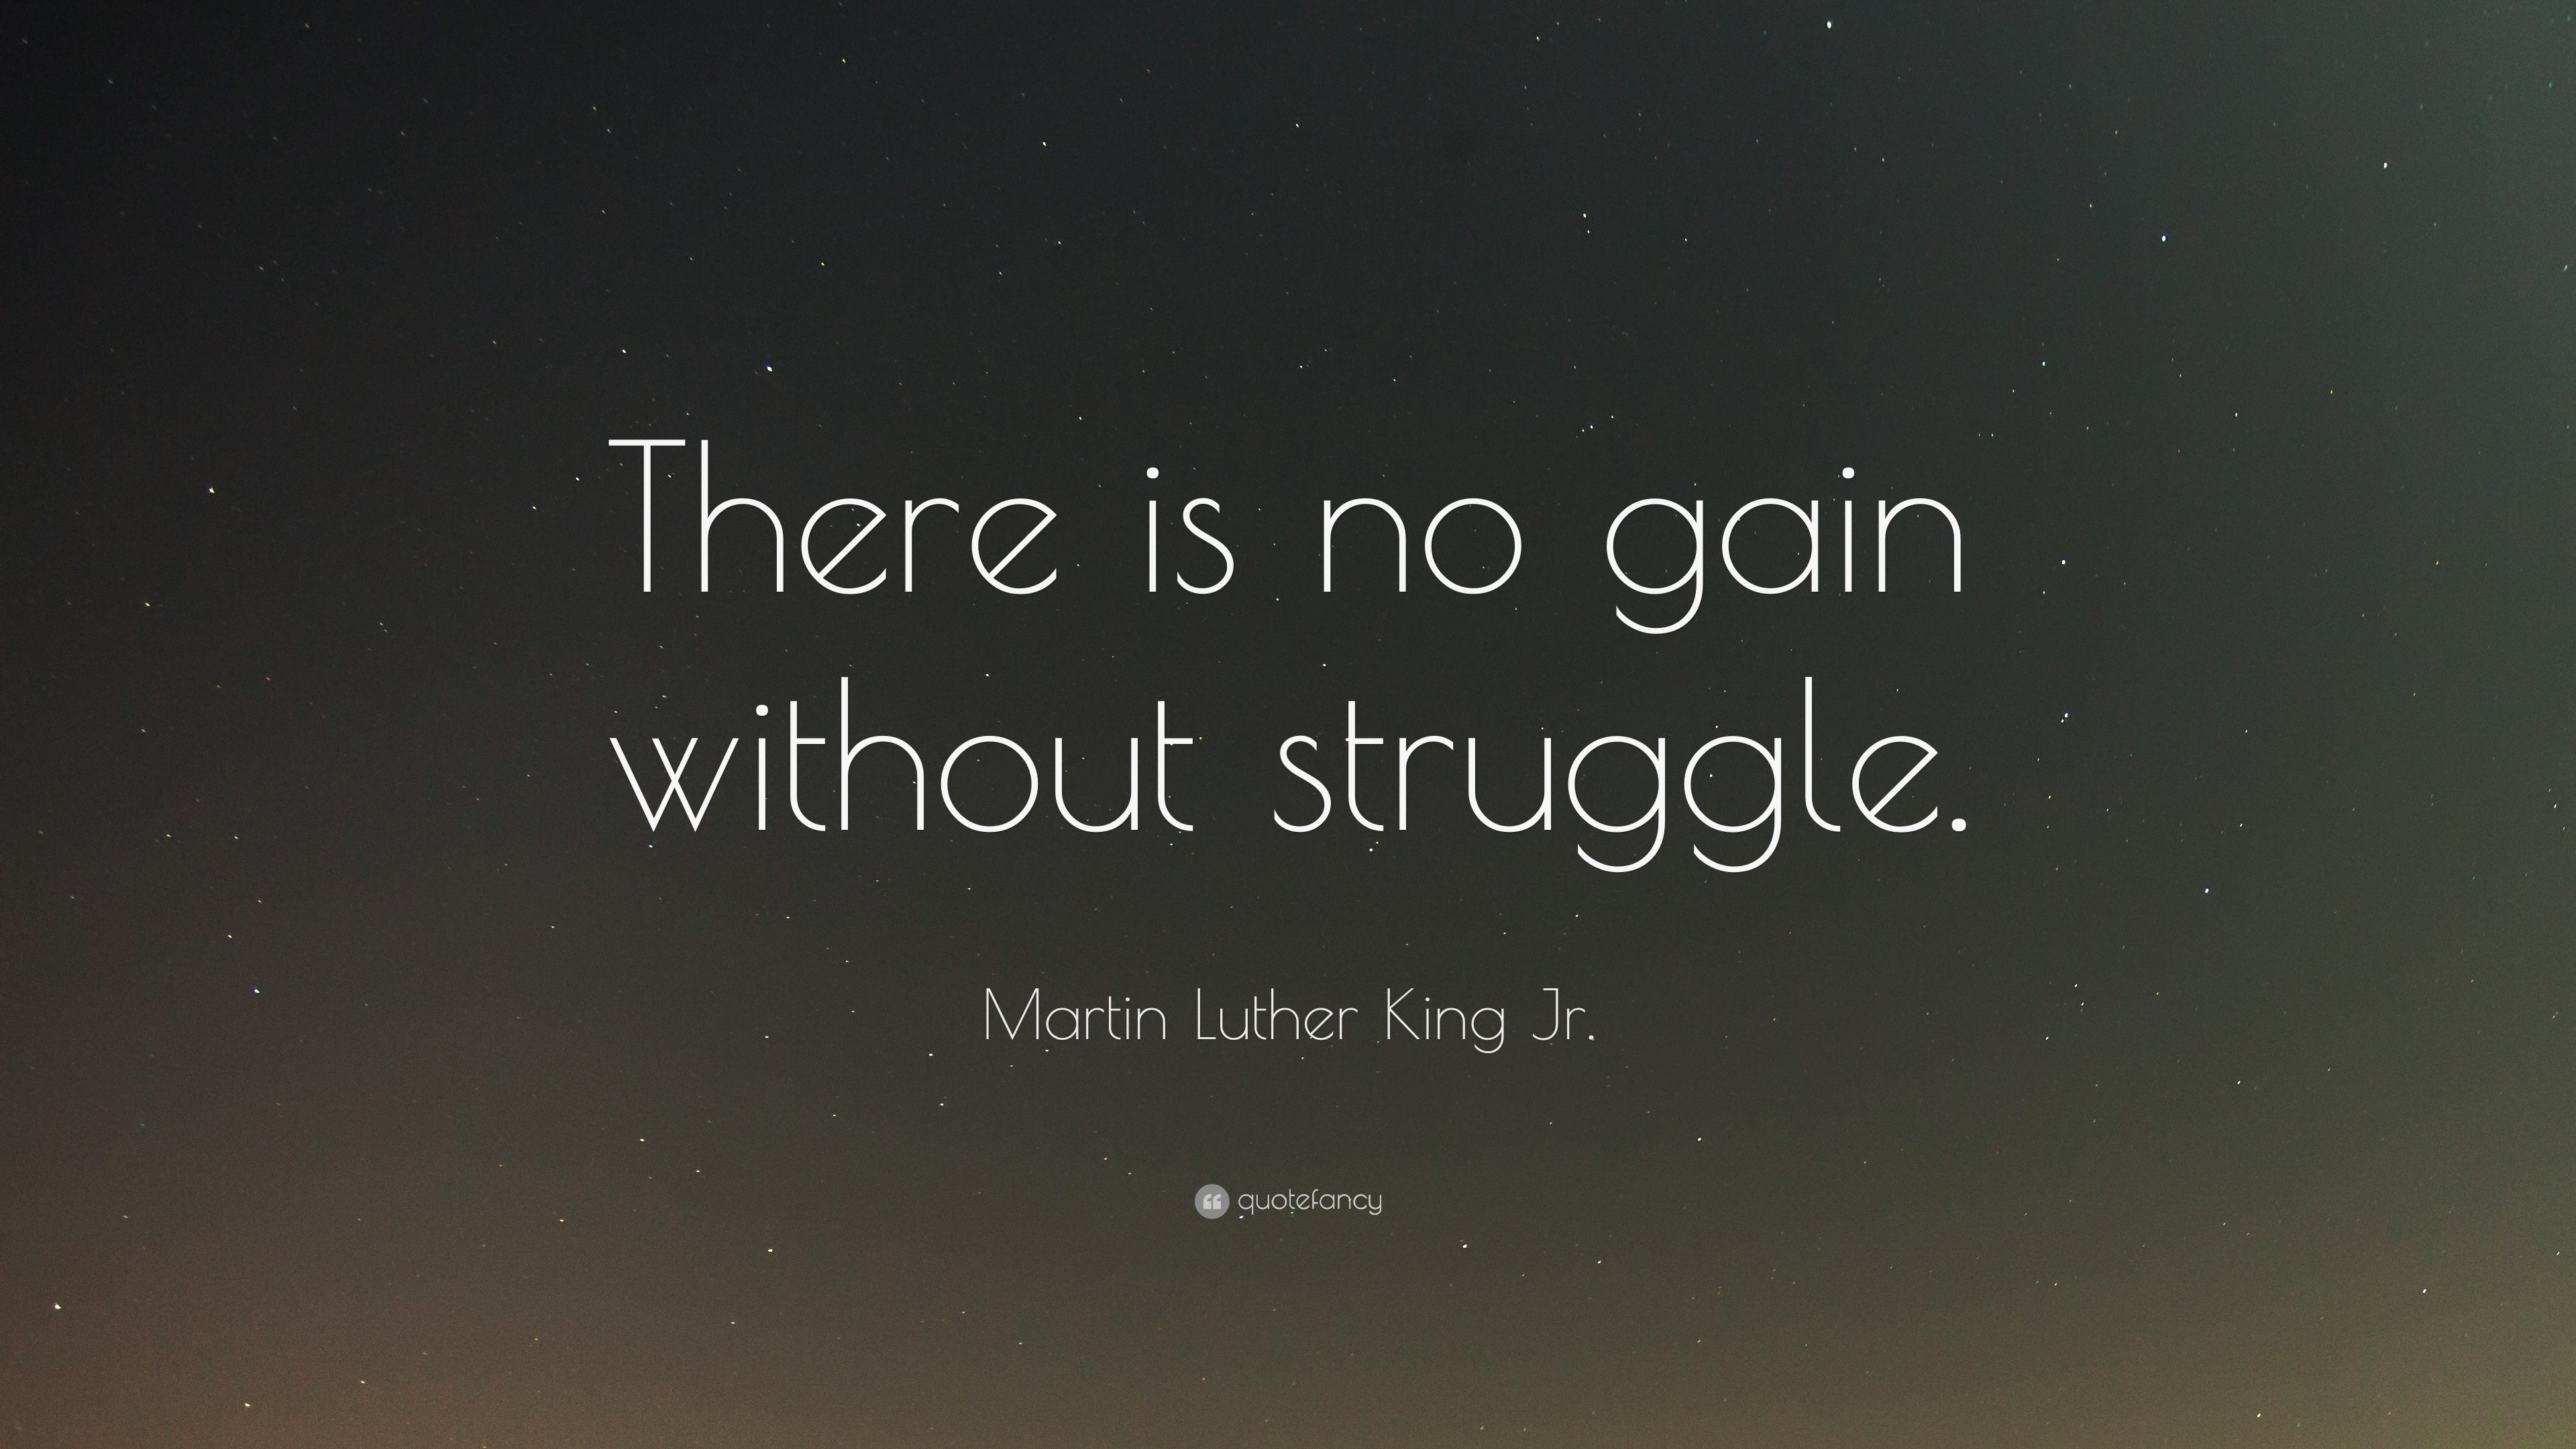 """Images Of Martin Luther King Quotes Martin Luther King Jrquote """"There Is No Gain Without Struggle"""